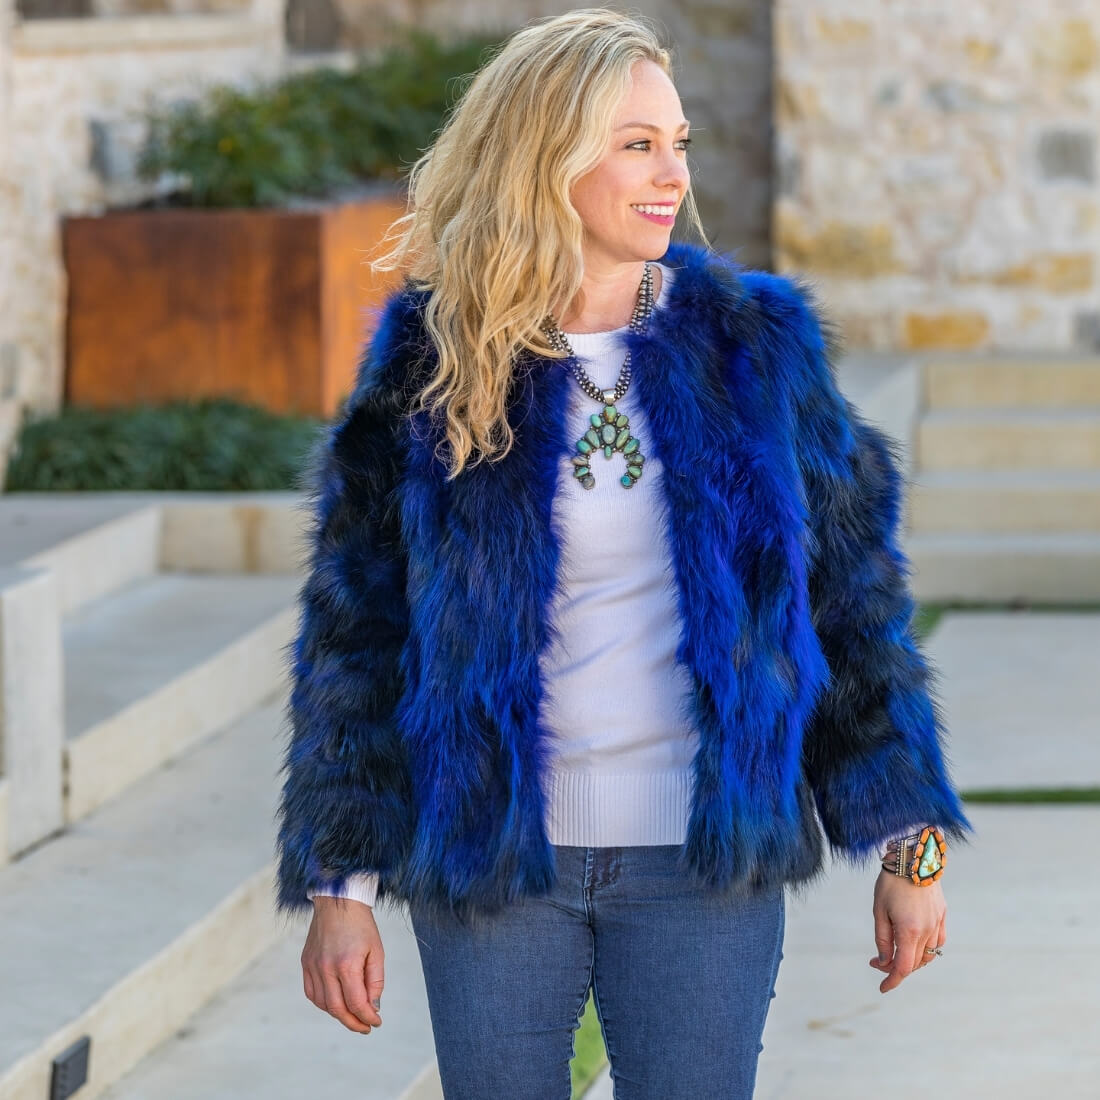 Woman smiling wearing cobalt blue fox fur bolero